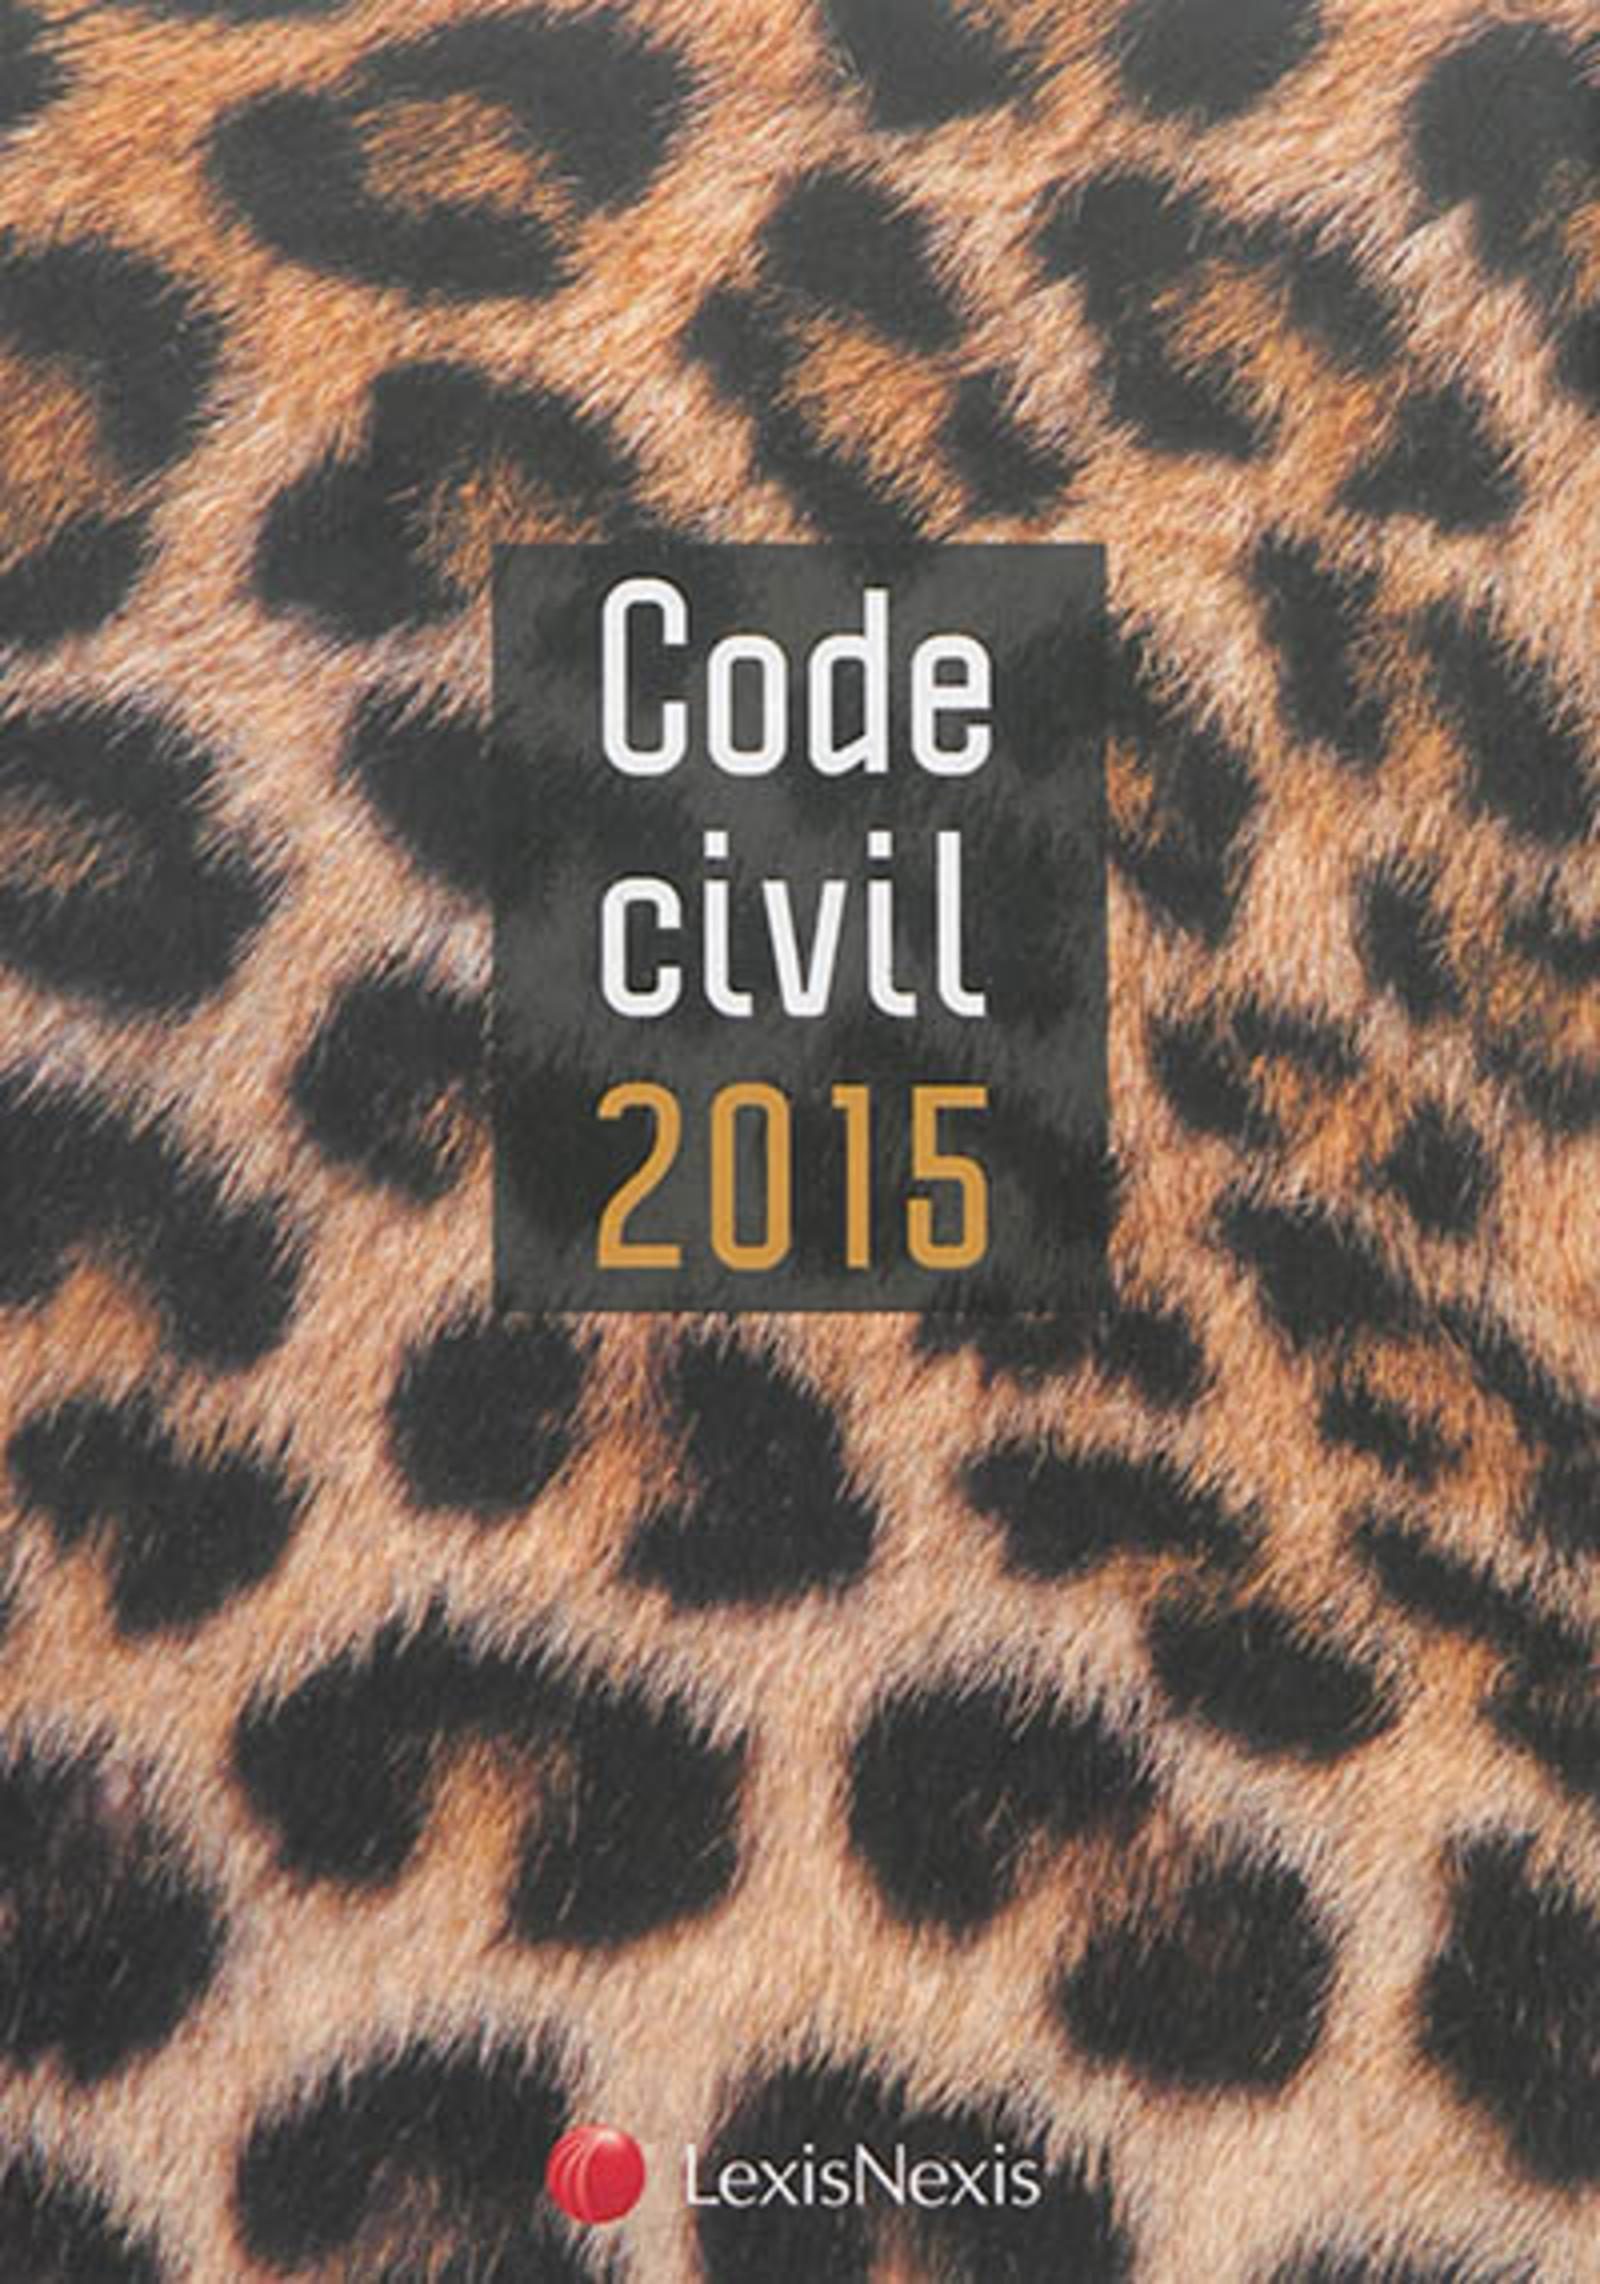 CODE CIVIL 2015 PANTHERE